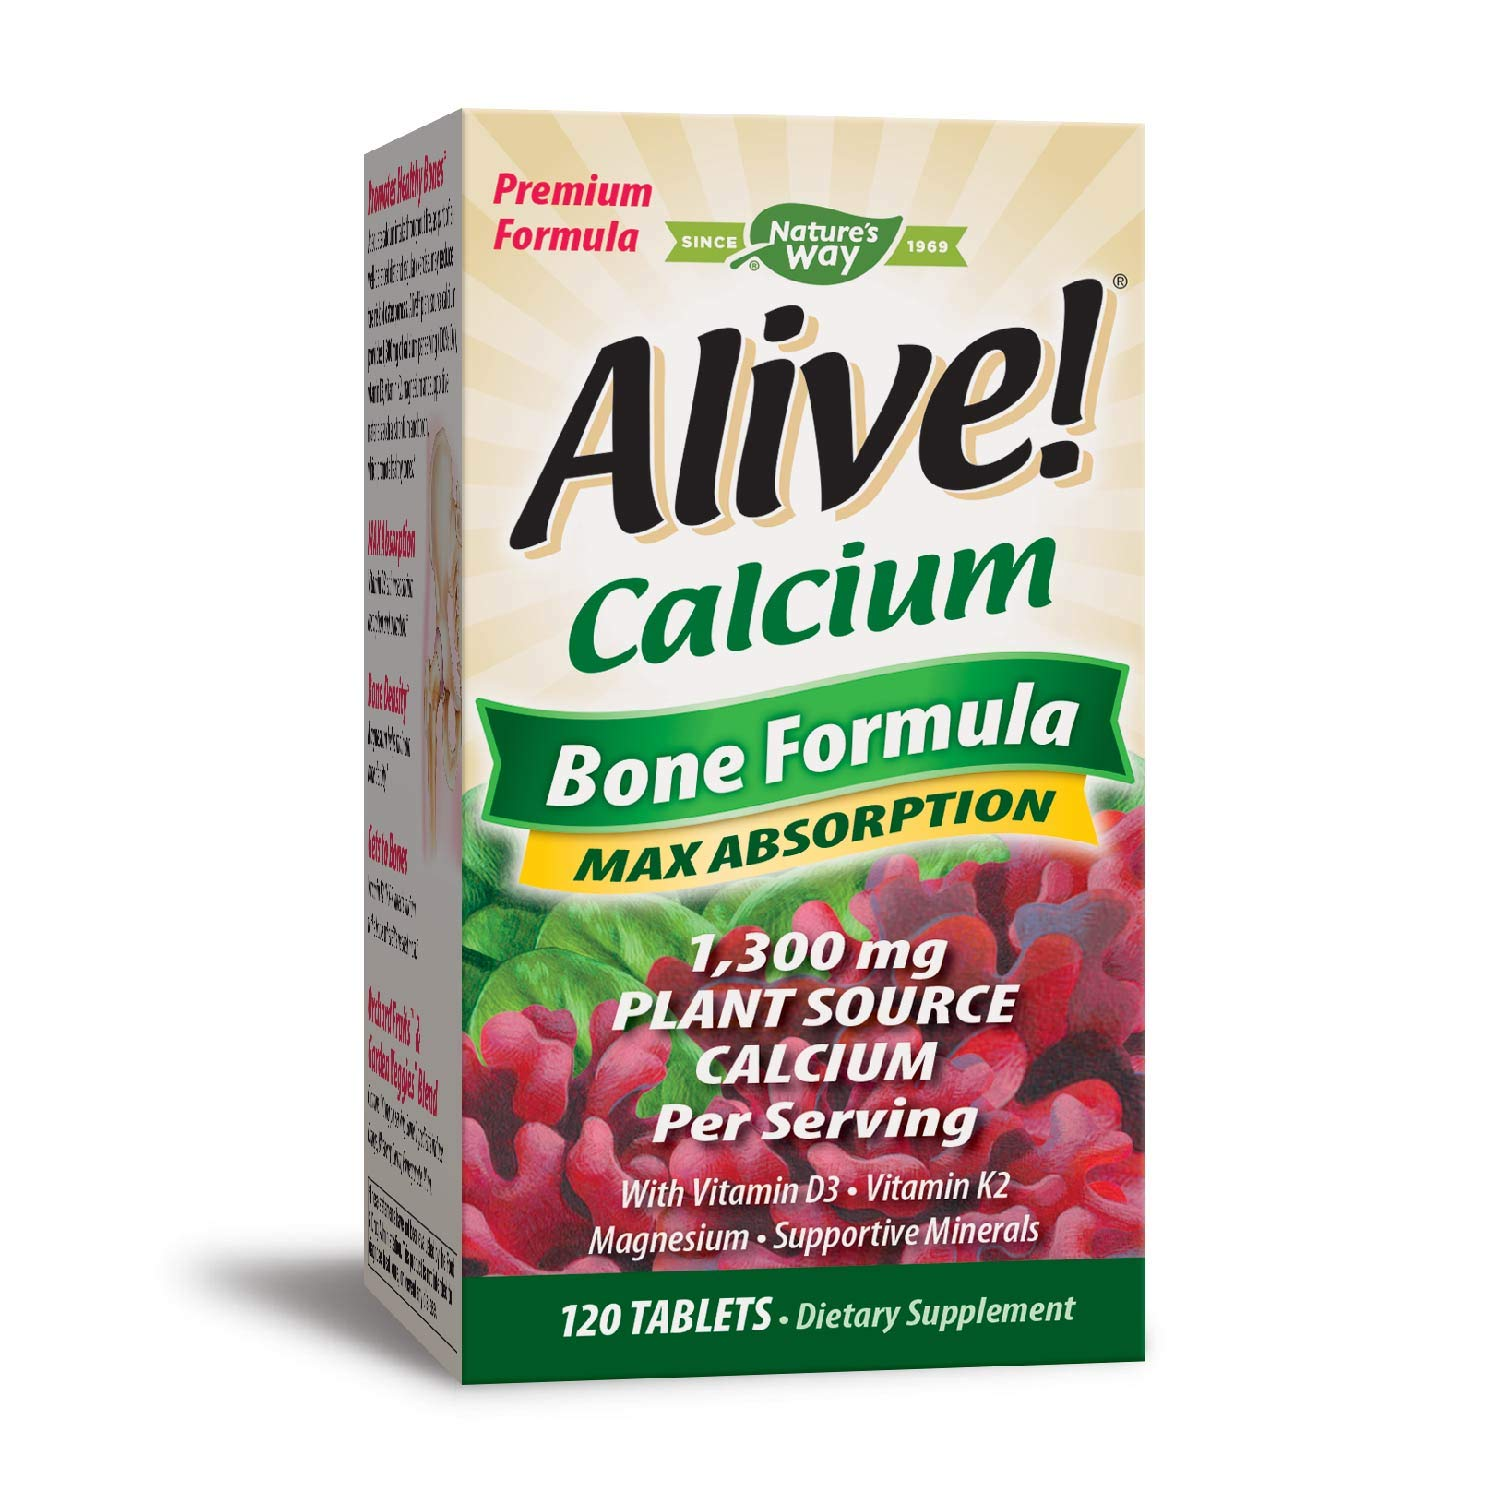 Natures Way Alive Calcium Bone Formula Supplement Softgel Green World 1000mg Per Serving 120 Tablets Packaging May Vary Health Personal Care